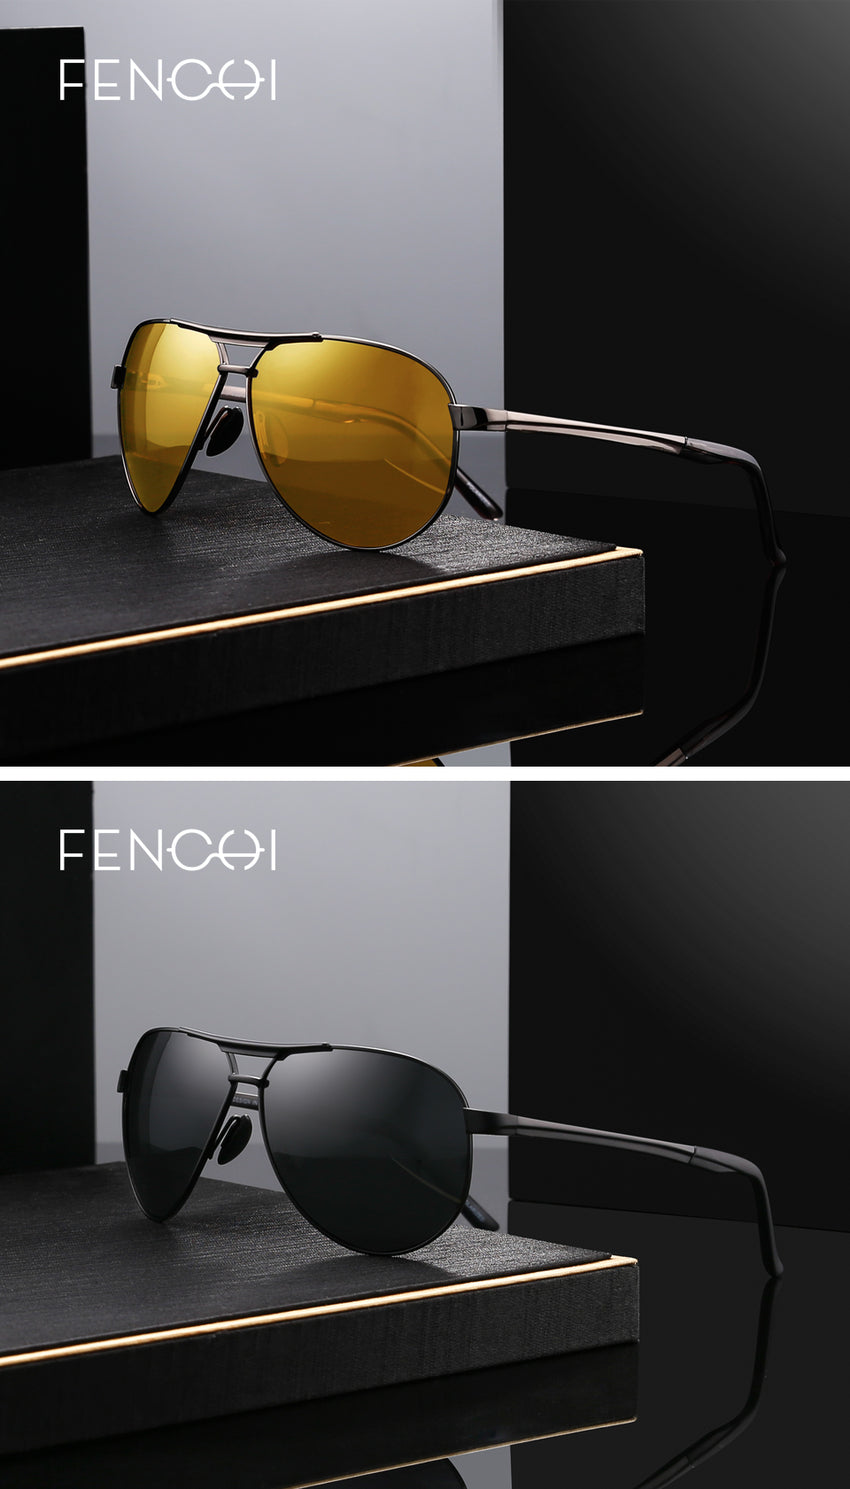 Fenchi Polarized Sunglasses Men Women Metal Uv400 Night Vision Fhd17216